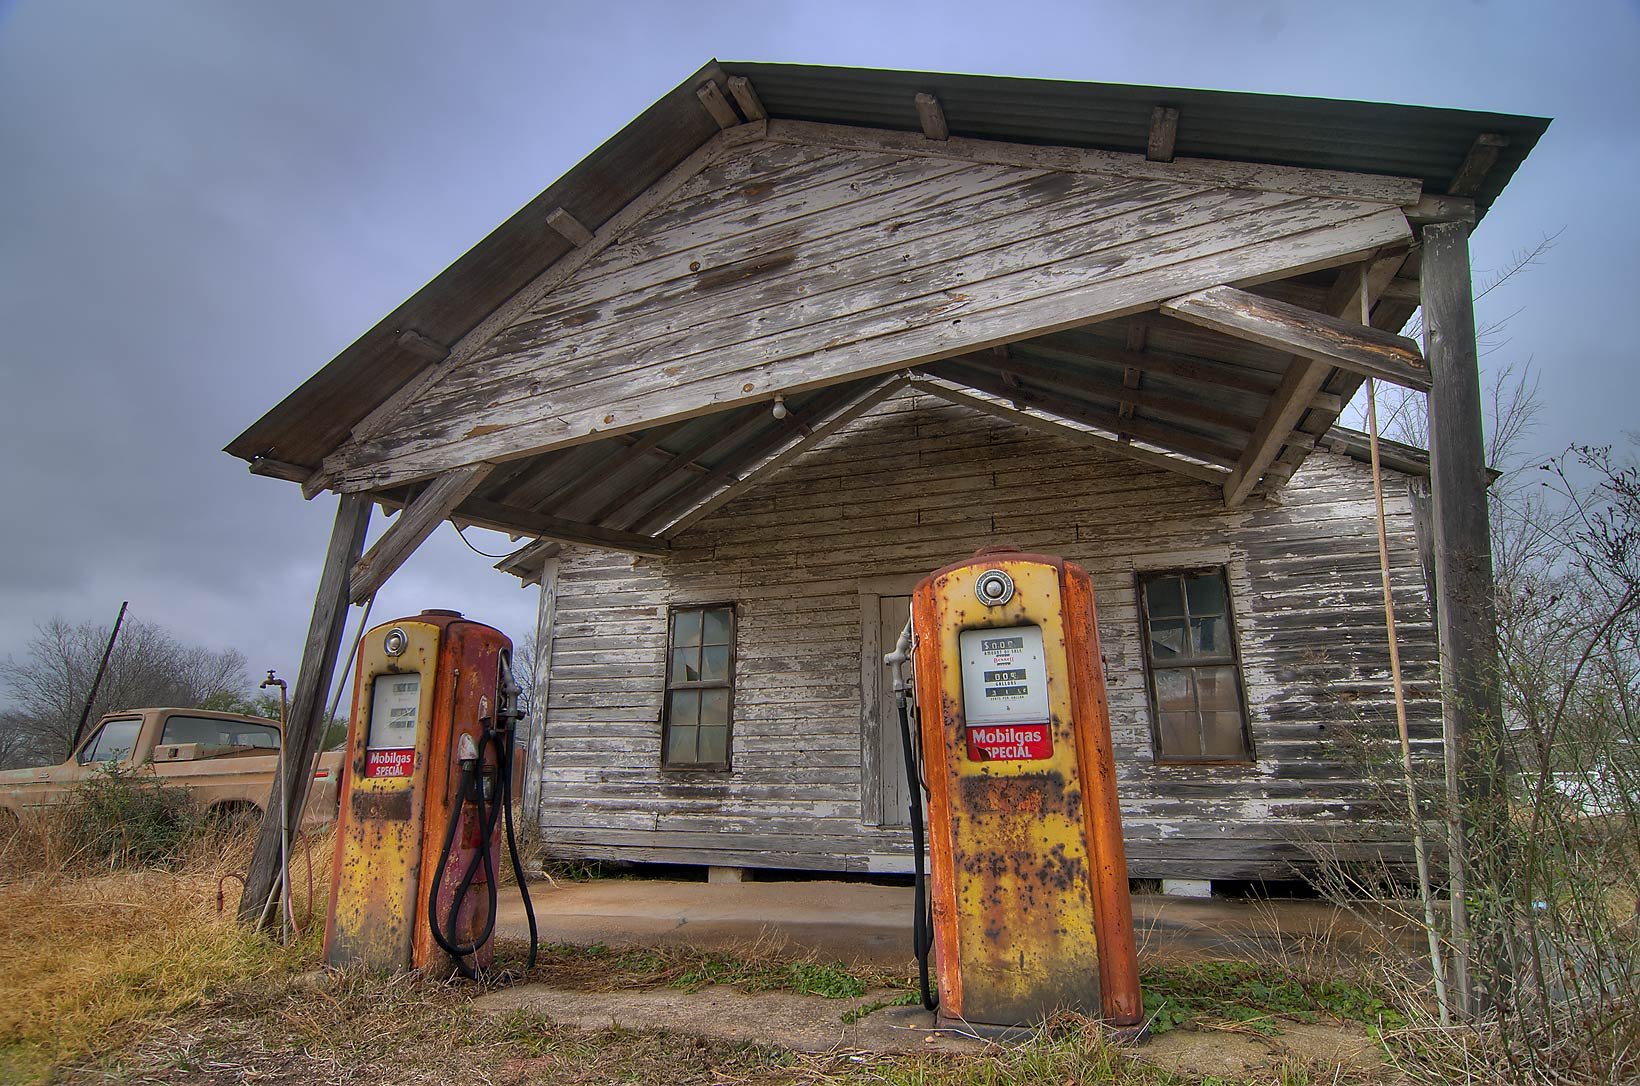 Old gas station with a vintage pickup truck at...39 S with FM 39 in North Zulch. Texas